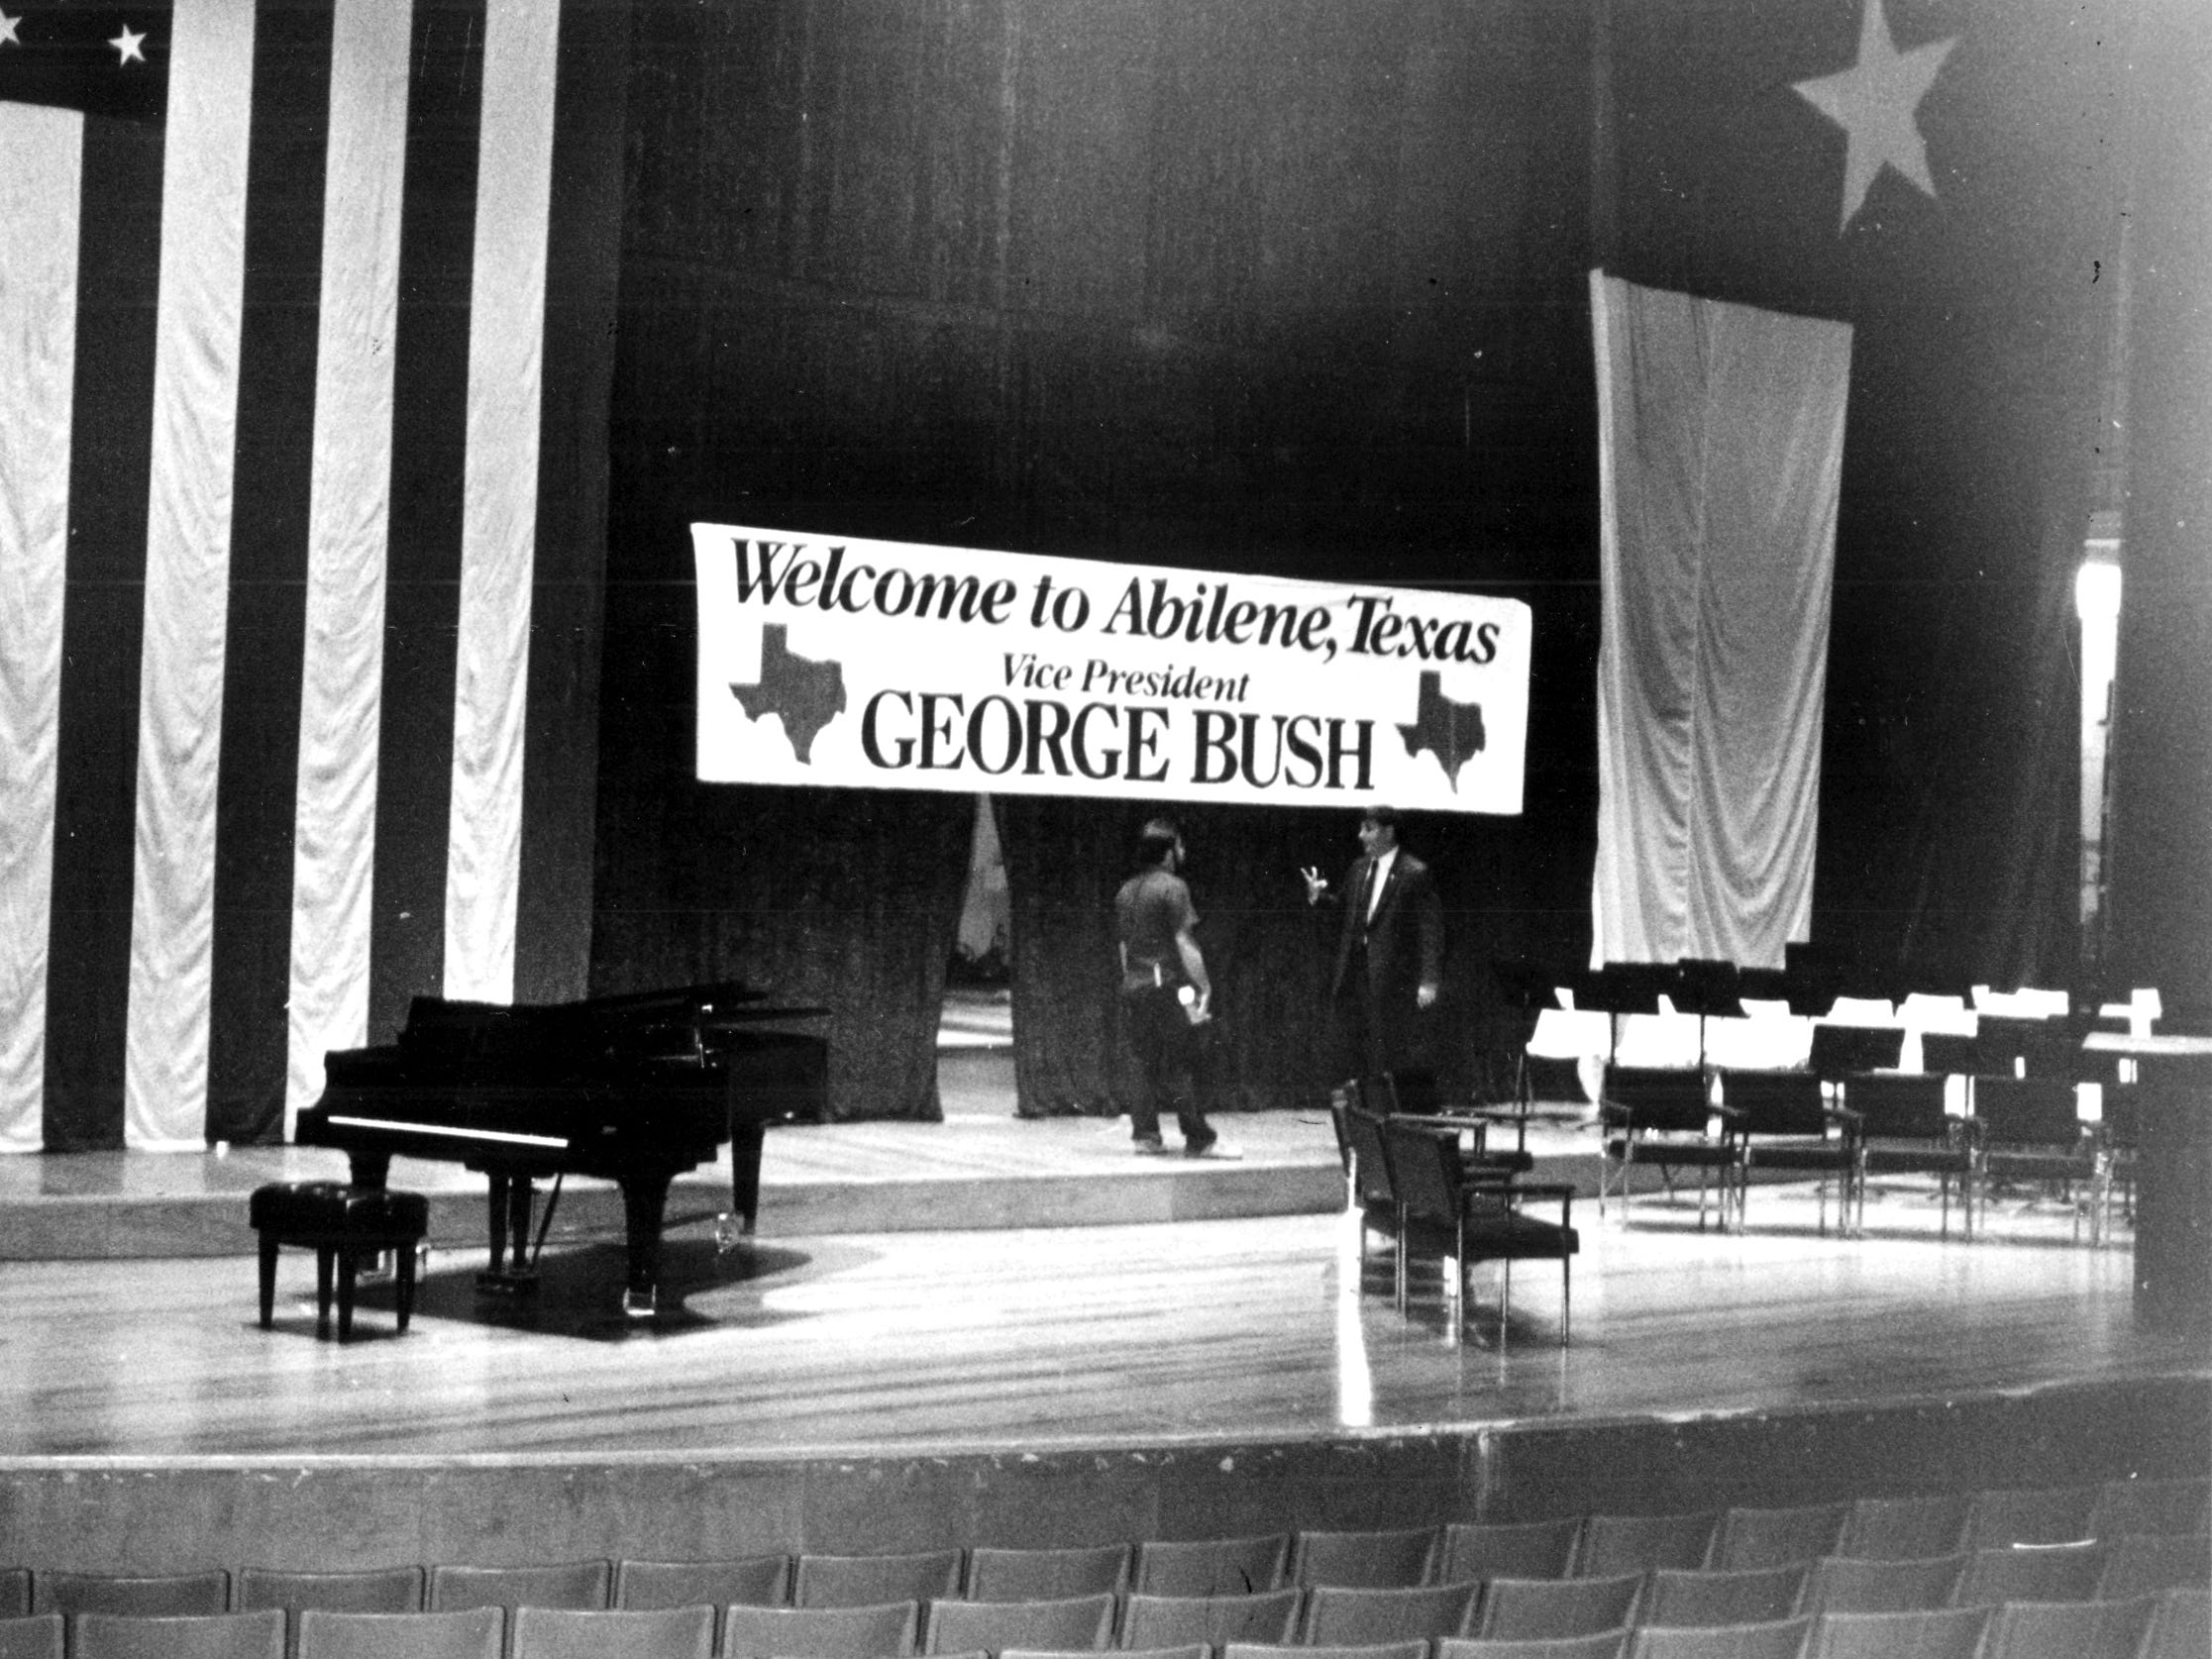 The stage setup at the Abilene Civic Center in July 1984 during the re-election campaign for the Reagan-Bush Administration.